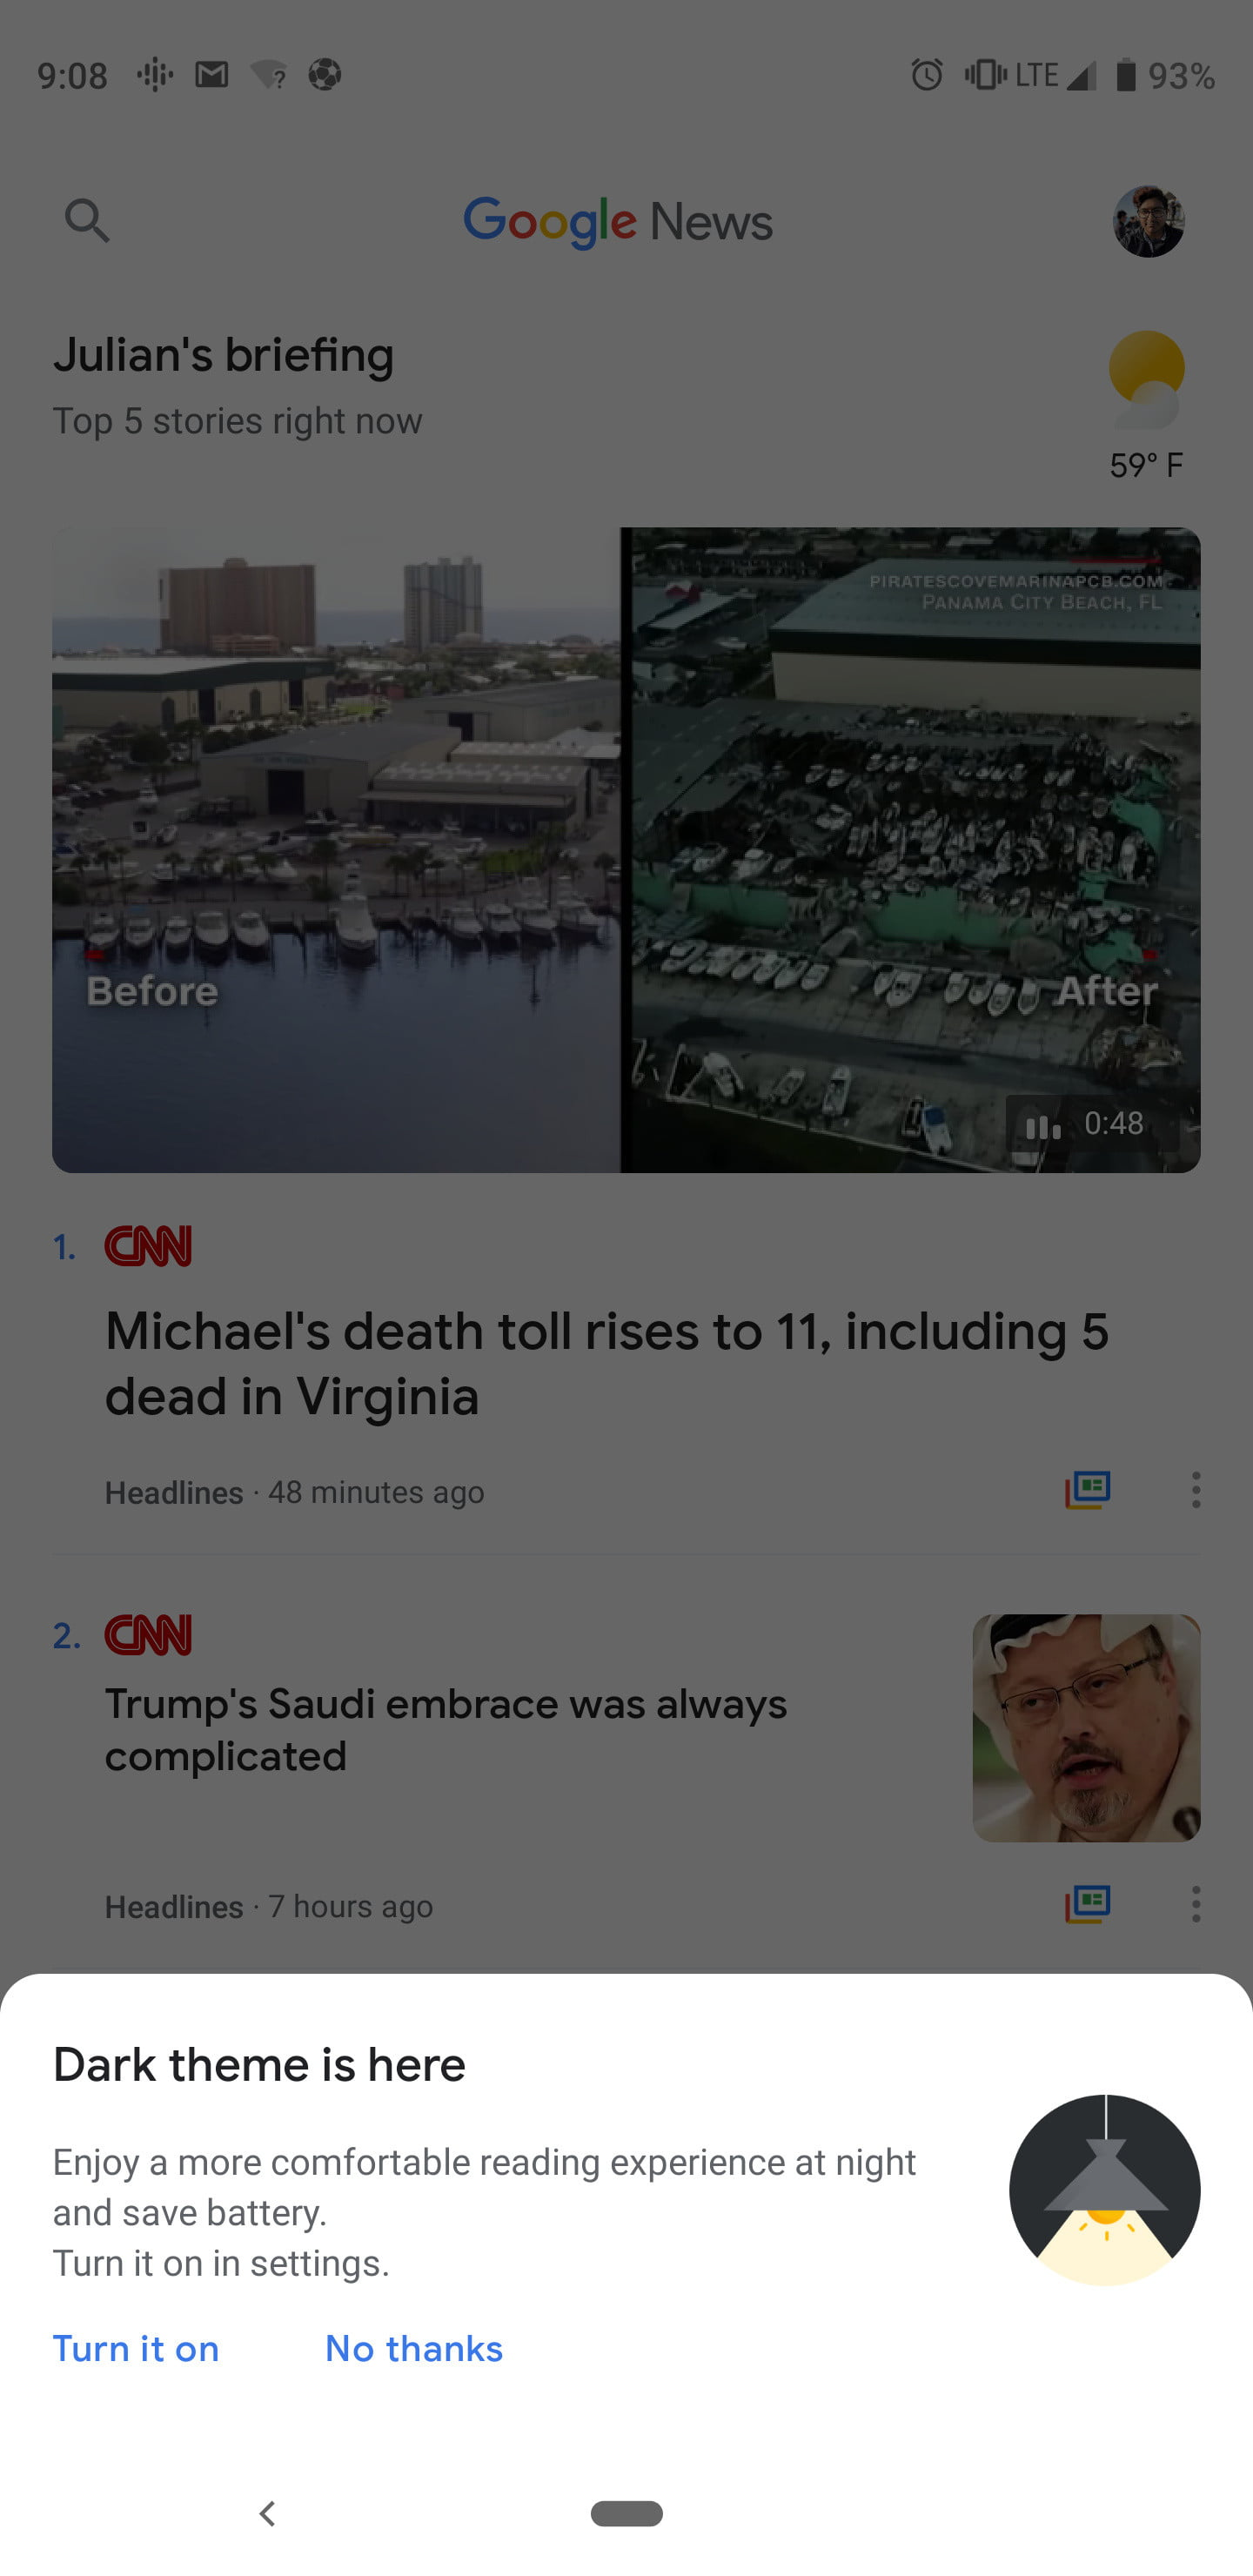 Google News Gets a Dark Mode in Its Latest Android Update